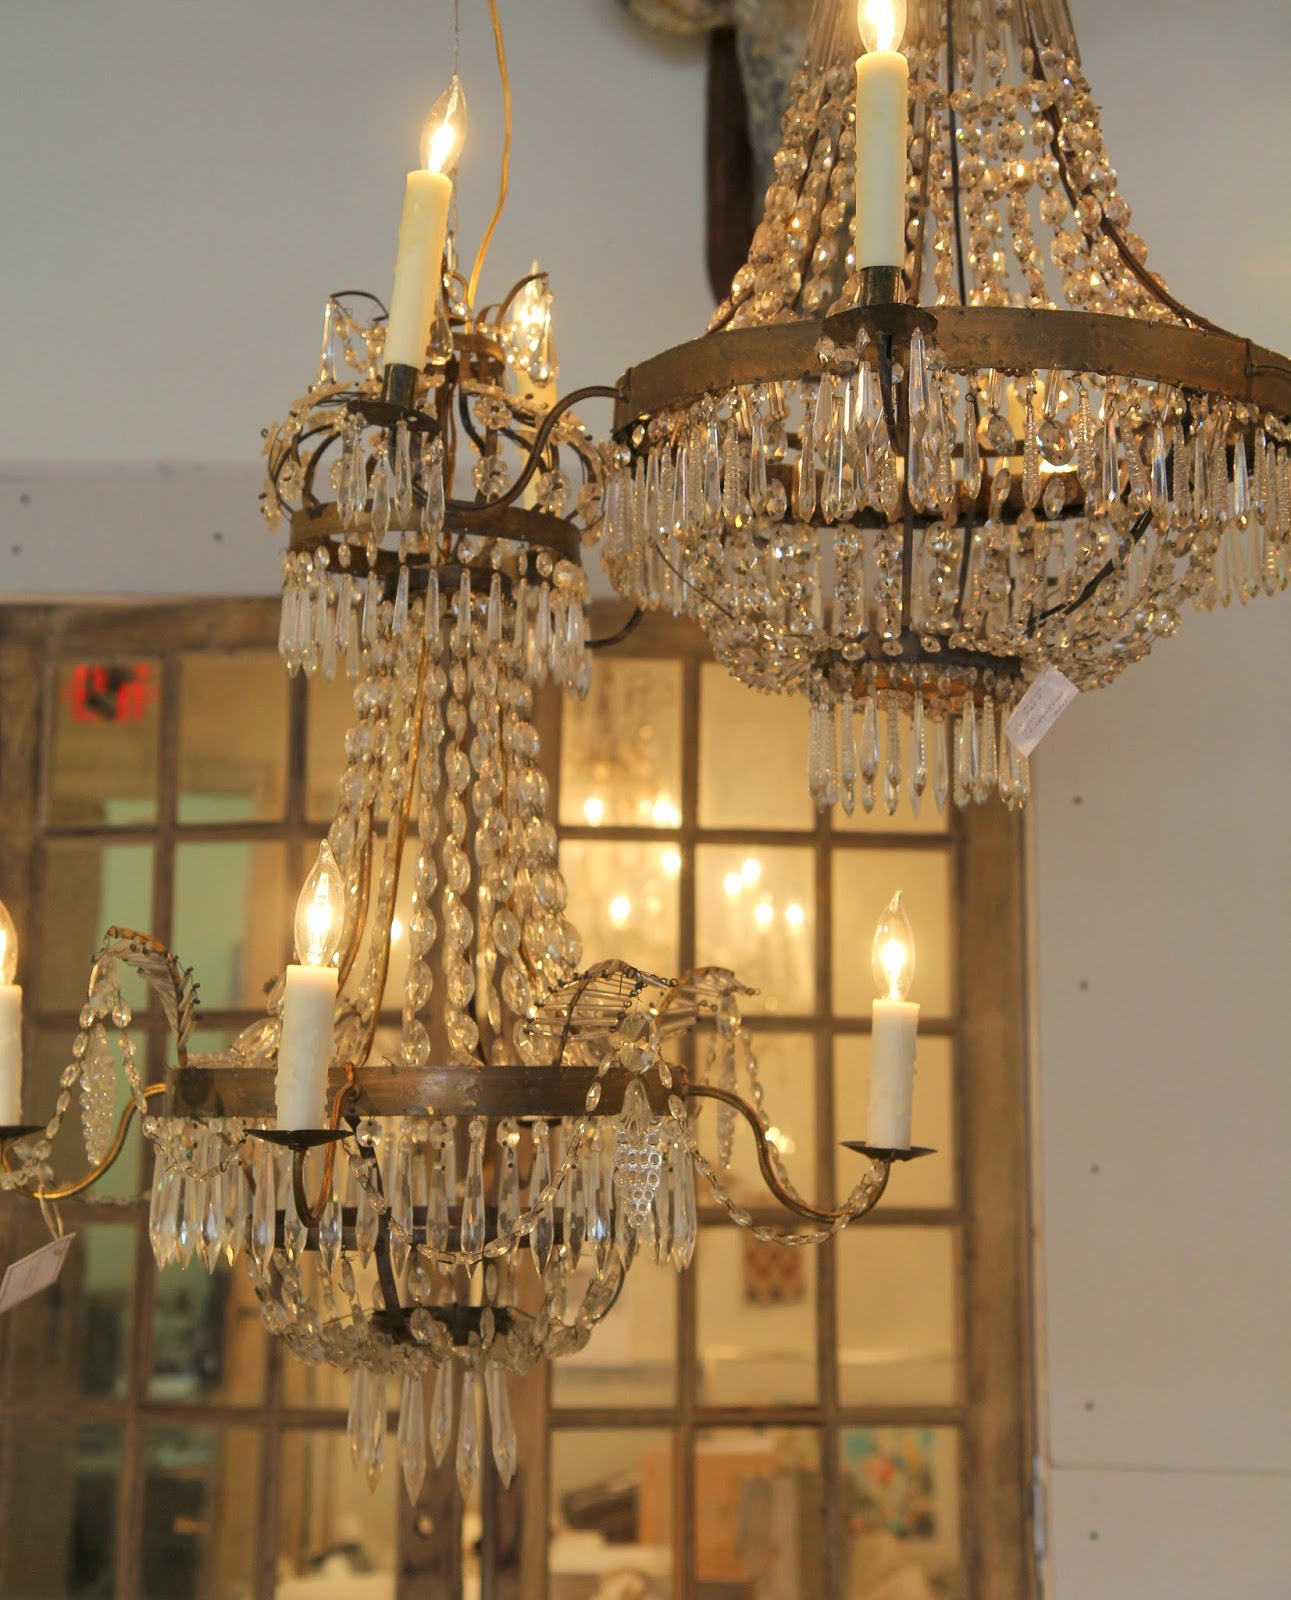 Spear crystal chandeliers; Inspirational Chandeliers and Sconces; Nora's Nest